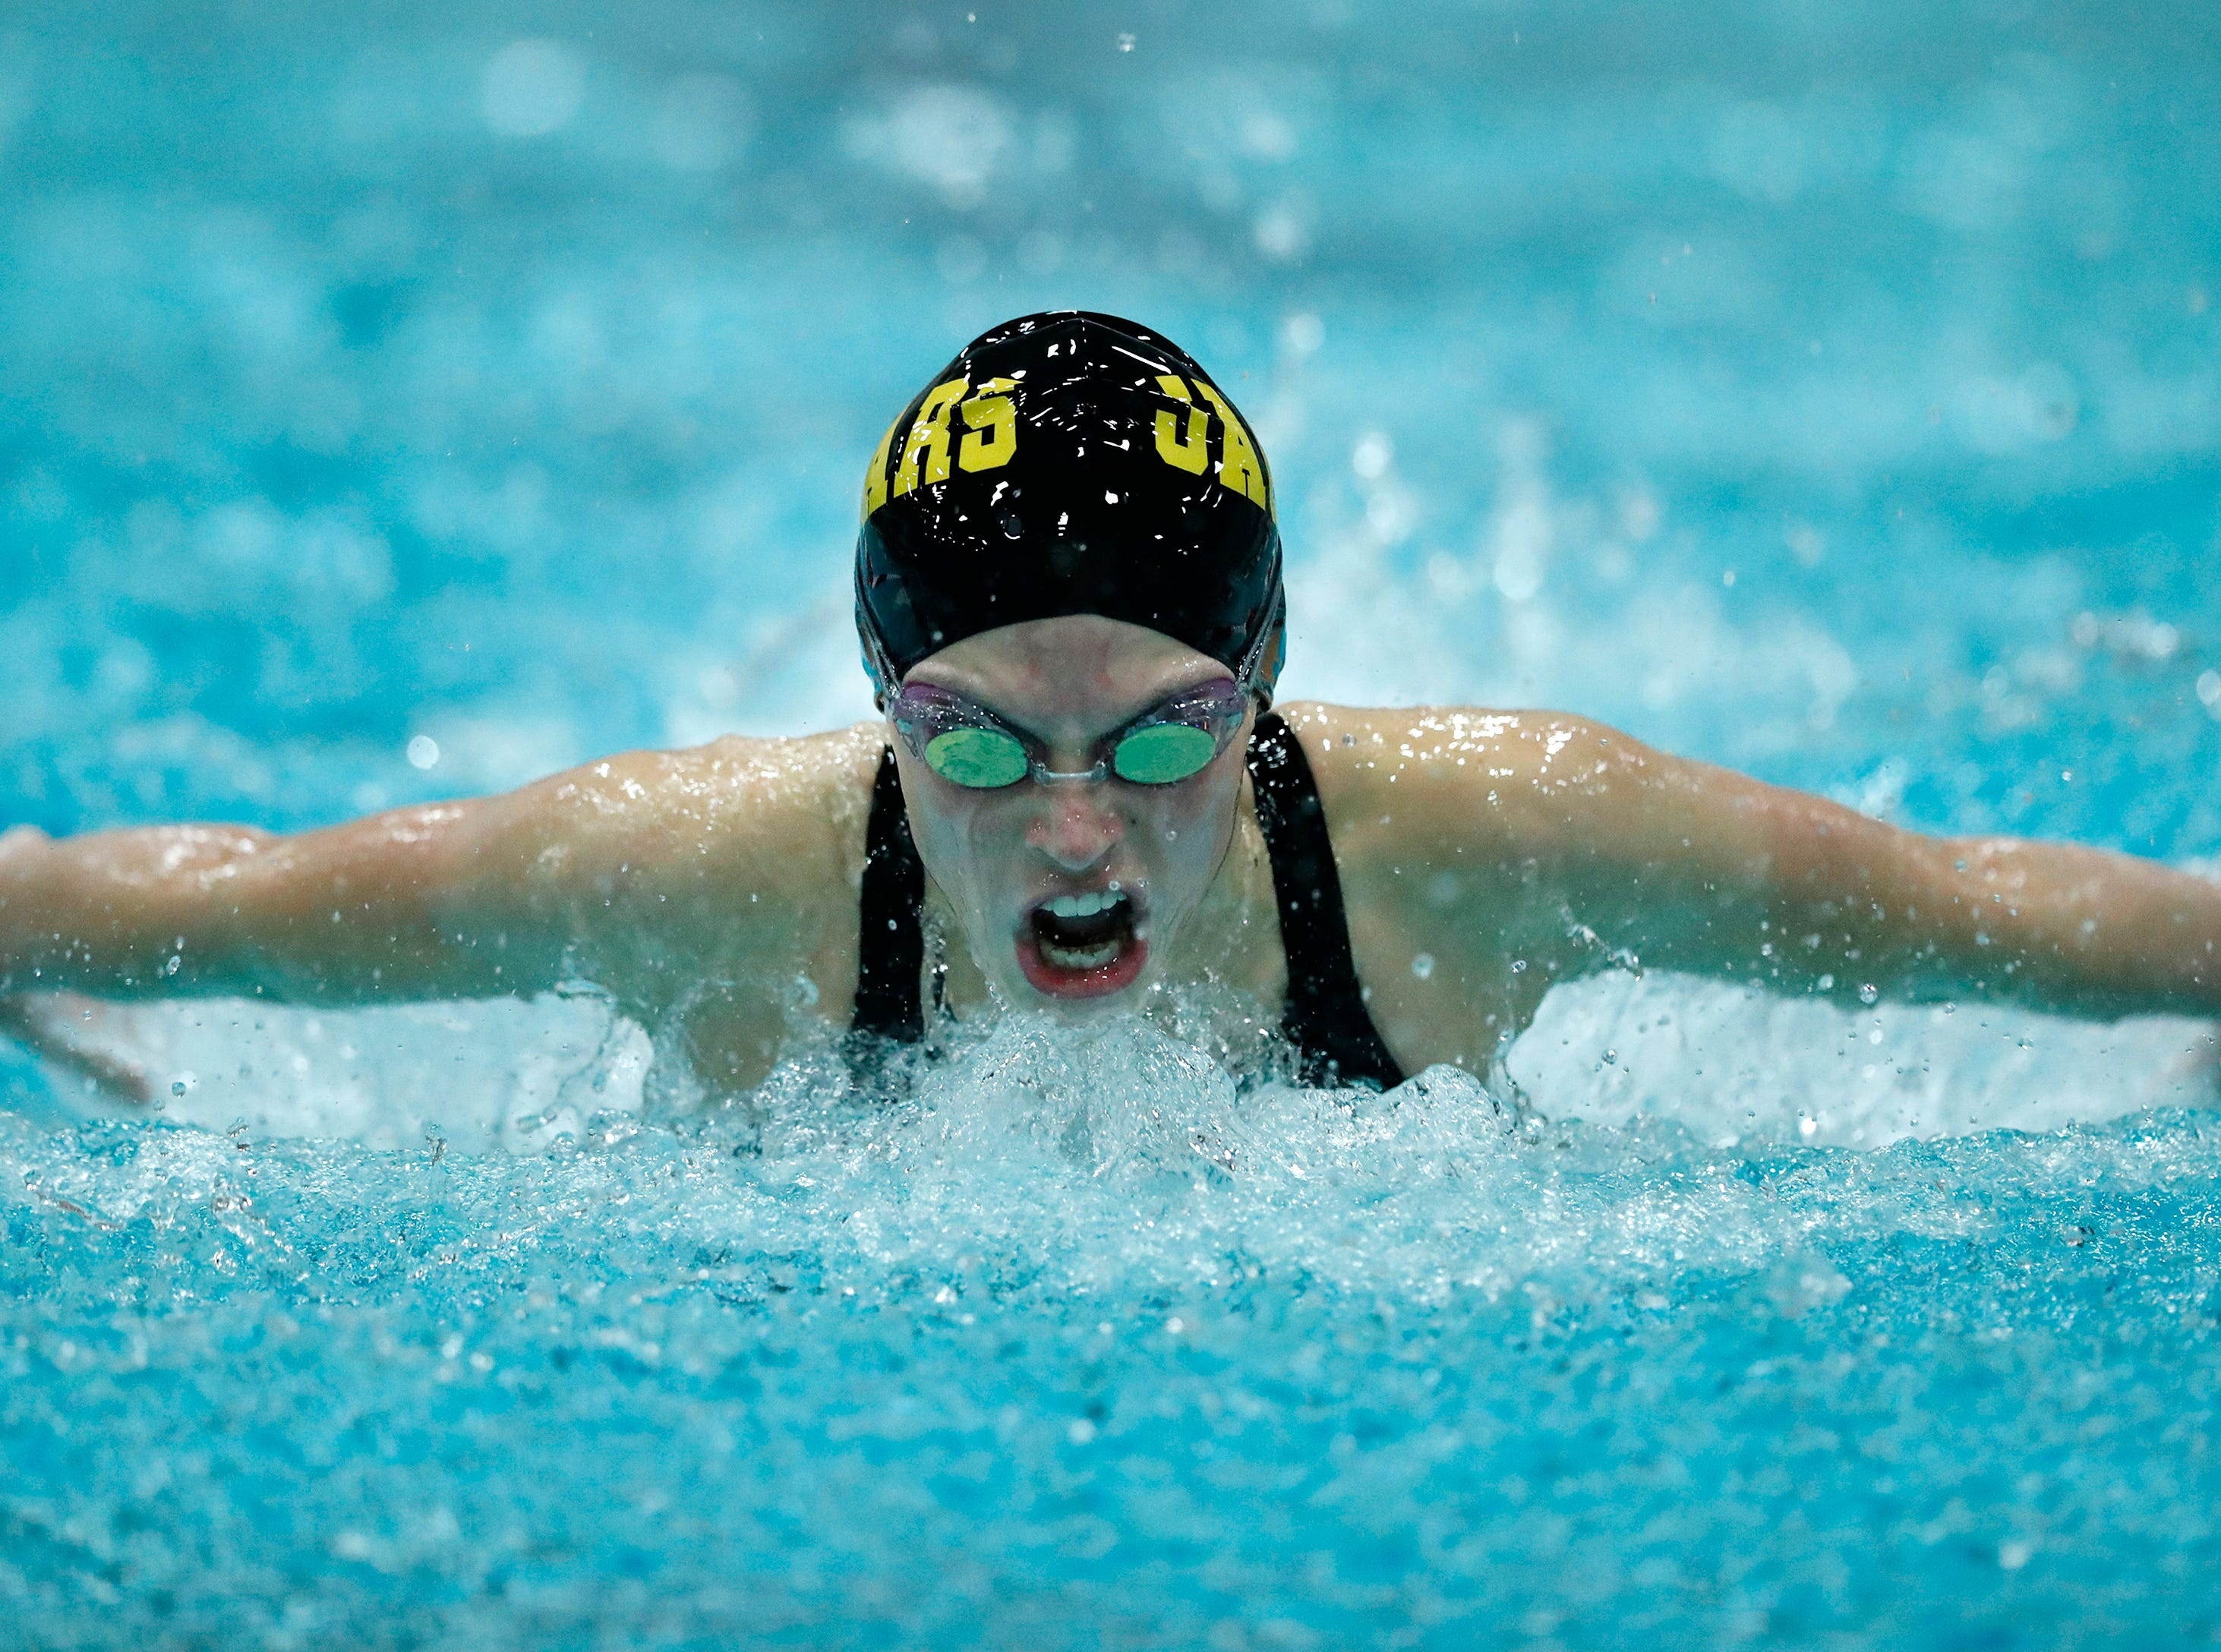 Ashwaubenon's Hallory Domnick races in the 100 yard butterfly during the WIAA Division 2 State Swimming and Diving meet Friday, Nov. 9, 2018, at the UW Natatorium in Madison, Wis.